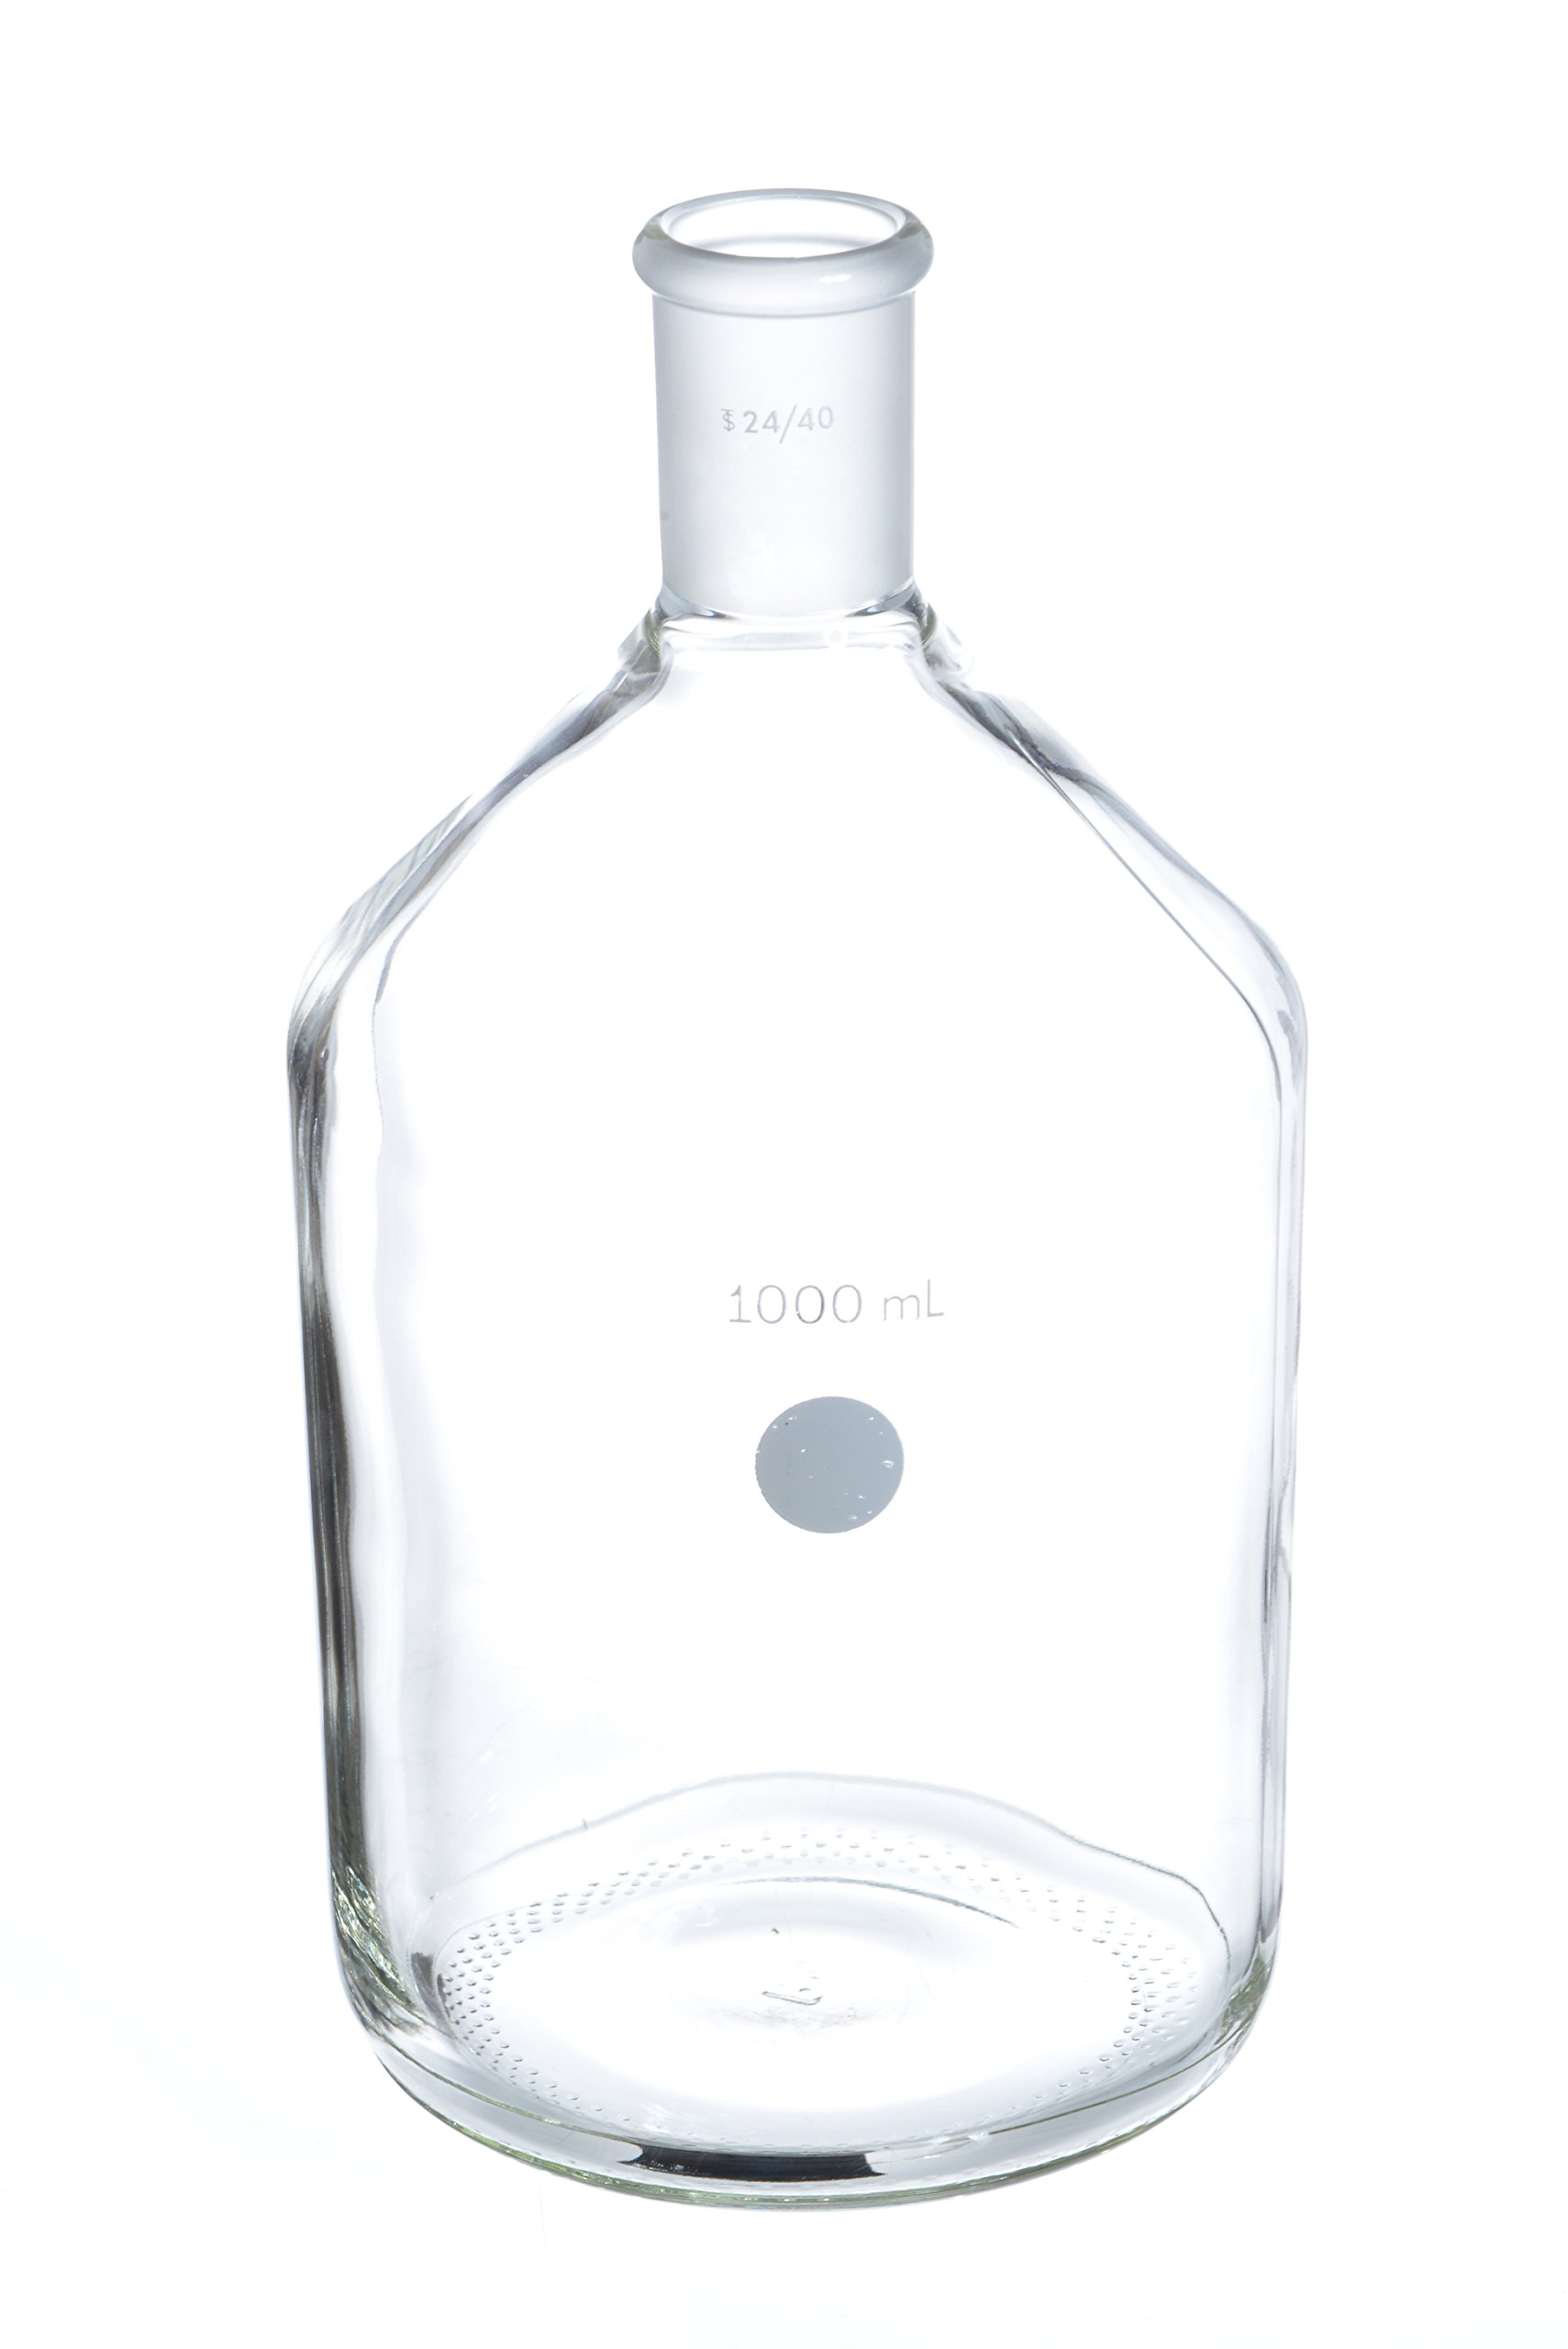 Wilmad-LabGlass LG-3460-104 Single Neck Bottle, 1000mL, Standard Taper 24/40 Outer